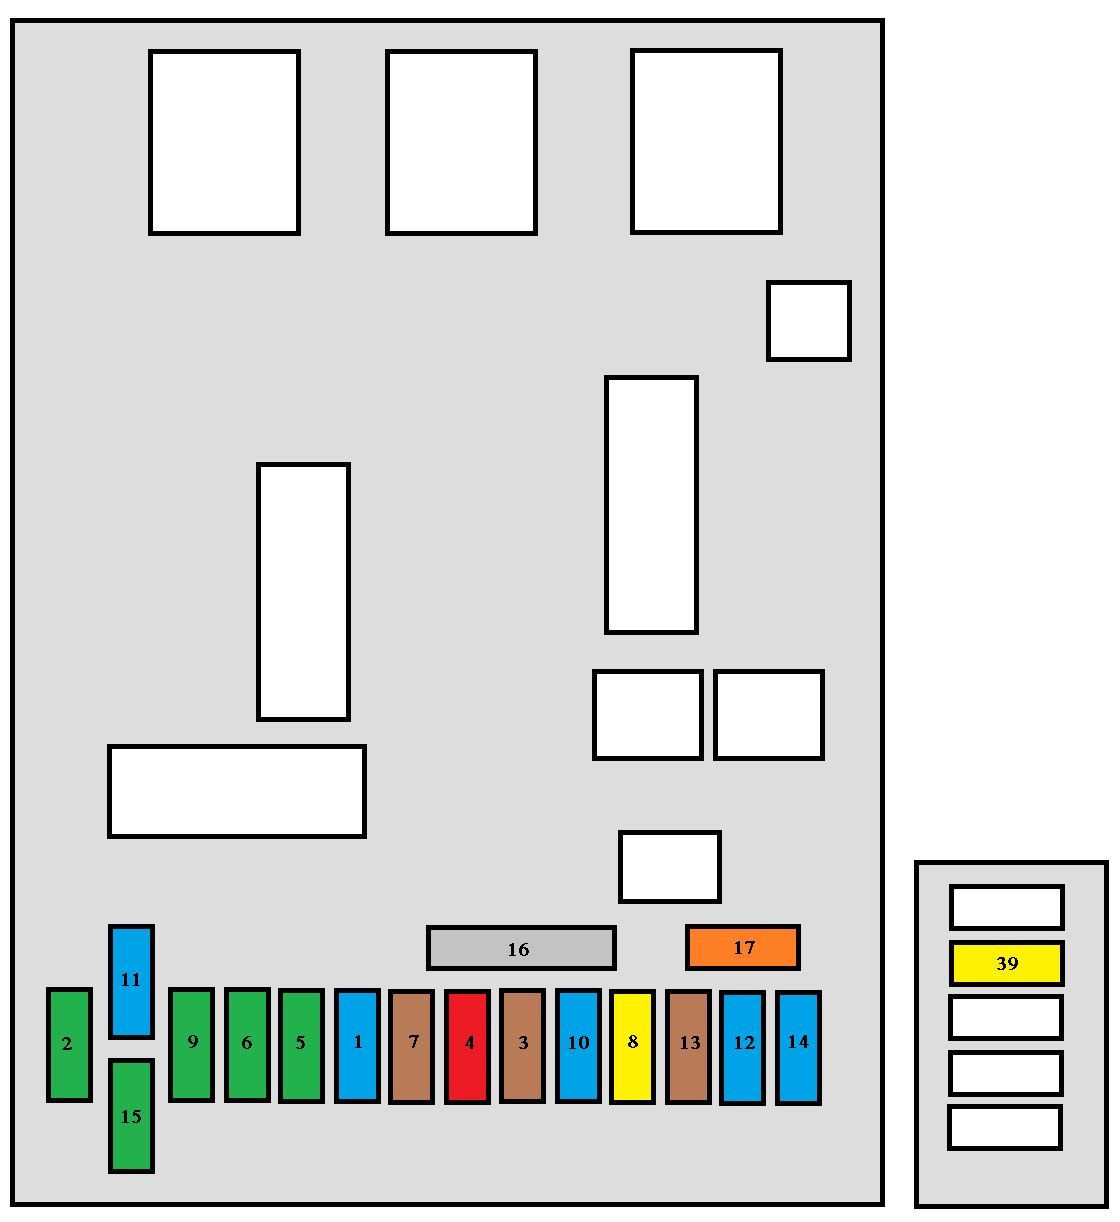 hight resolution of peugeot fuse box 207 wiring diagram citroen c3 engine fuse box layout